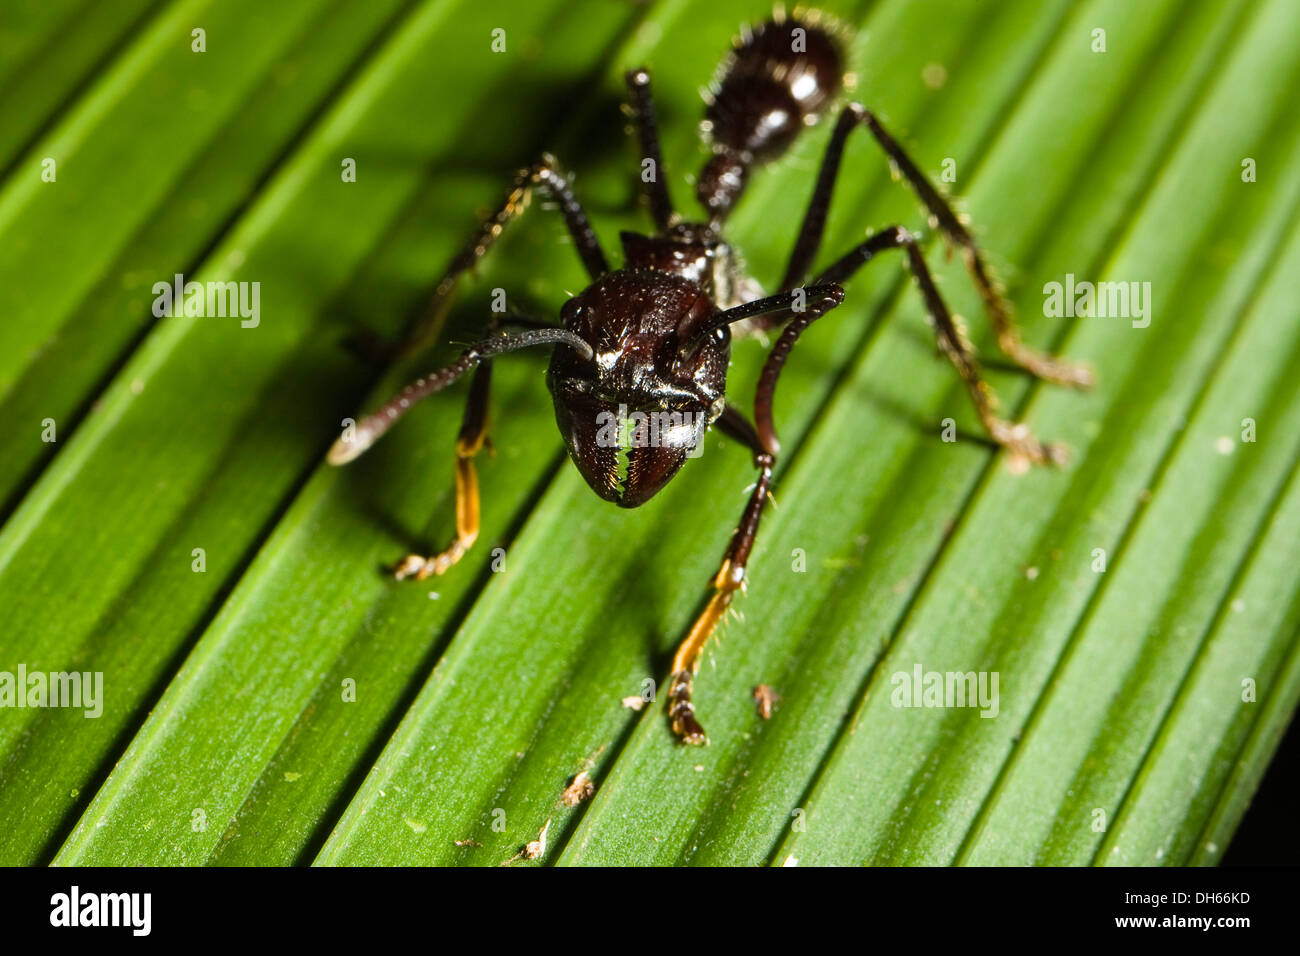 Lesser Giant Hunting Ant, Conga Ant or Bullet Ant (Paraponera clavata) in the lowland rainforest, Braulio Carrillo National Park Stock Photo